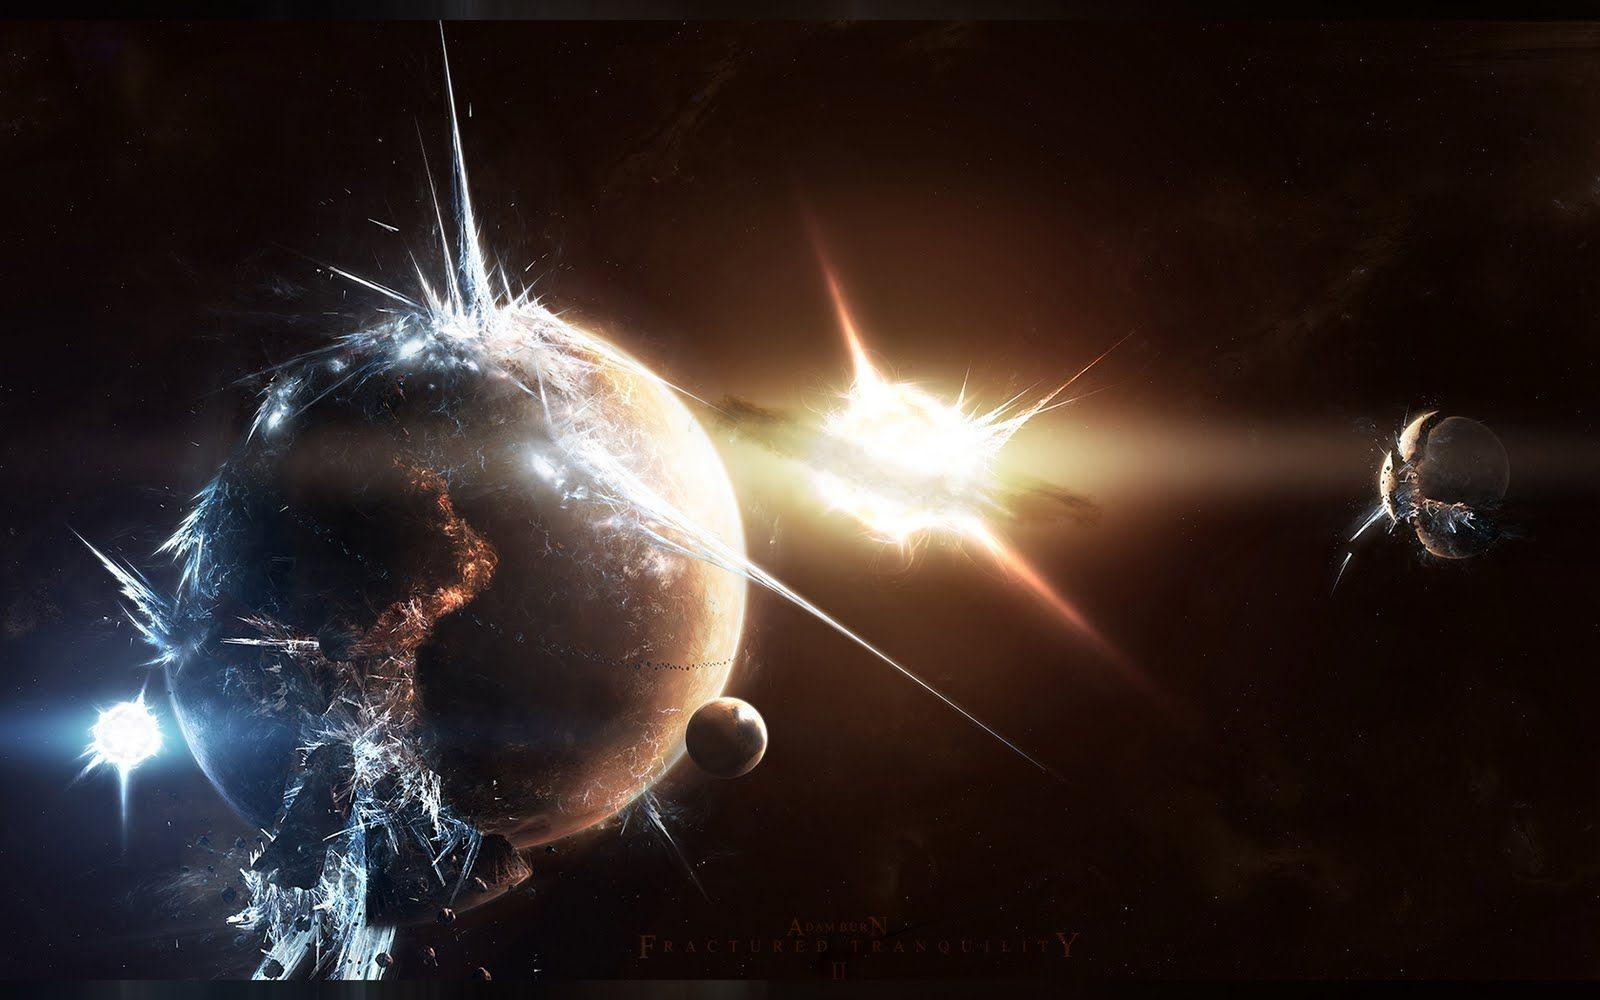 Space hd wallpapers 1080p wallpaper cave - Solar system hd wallpapers 1080p ...